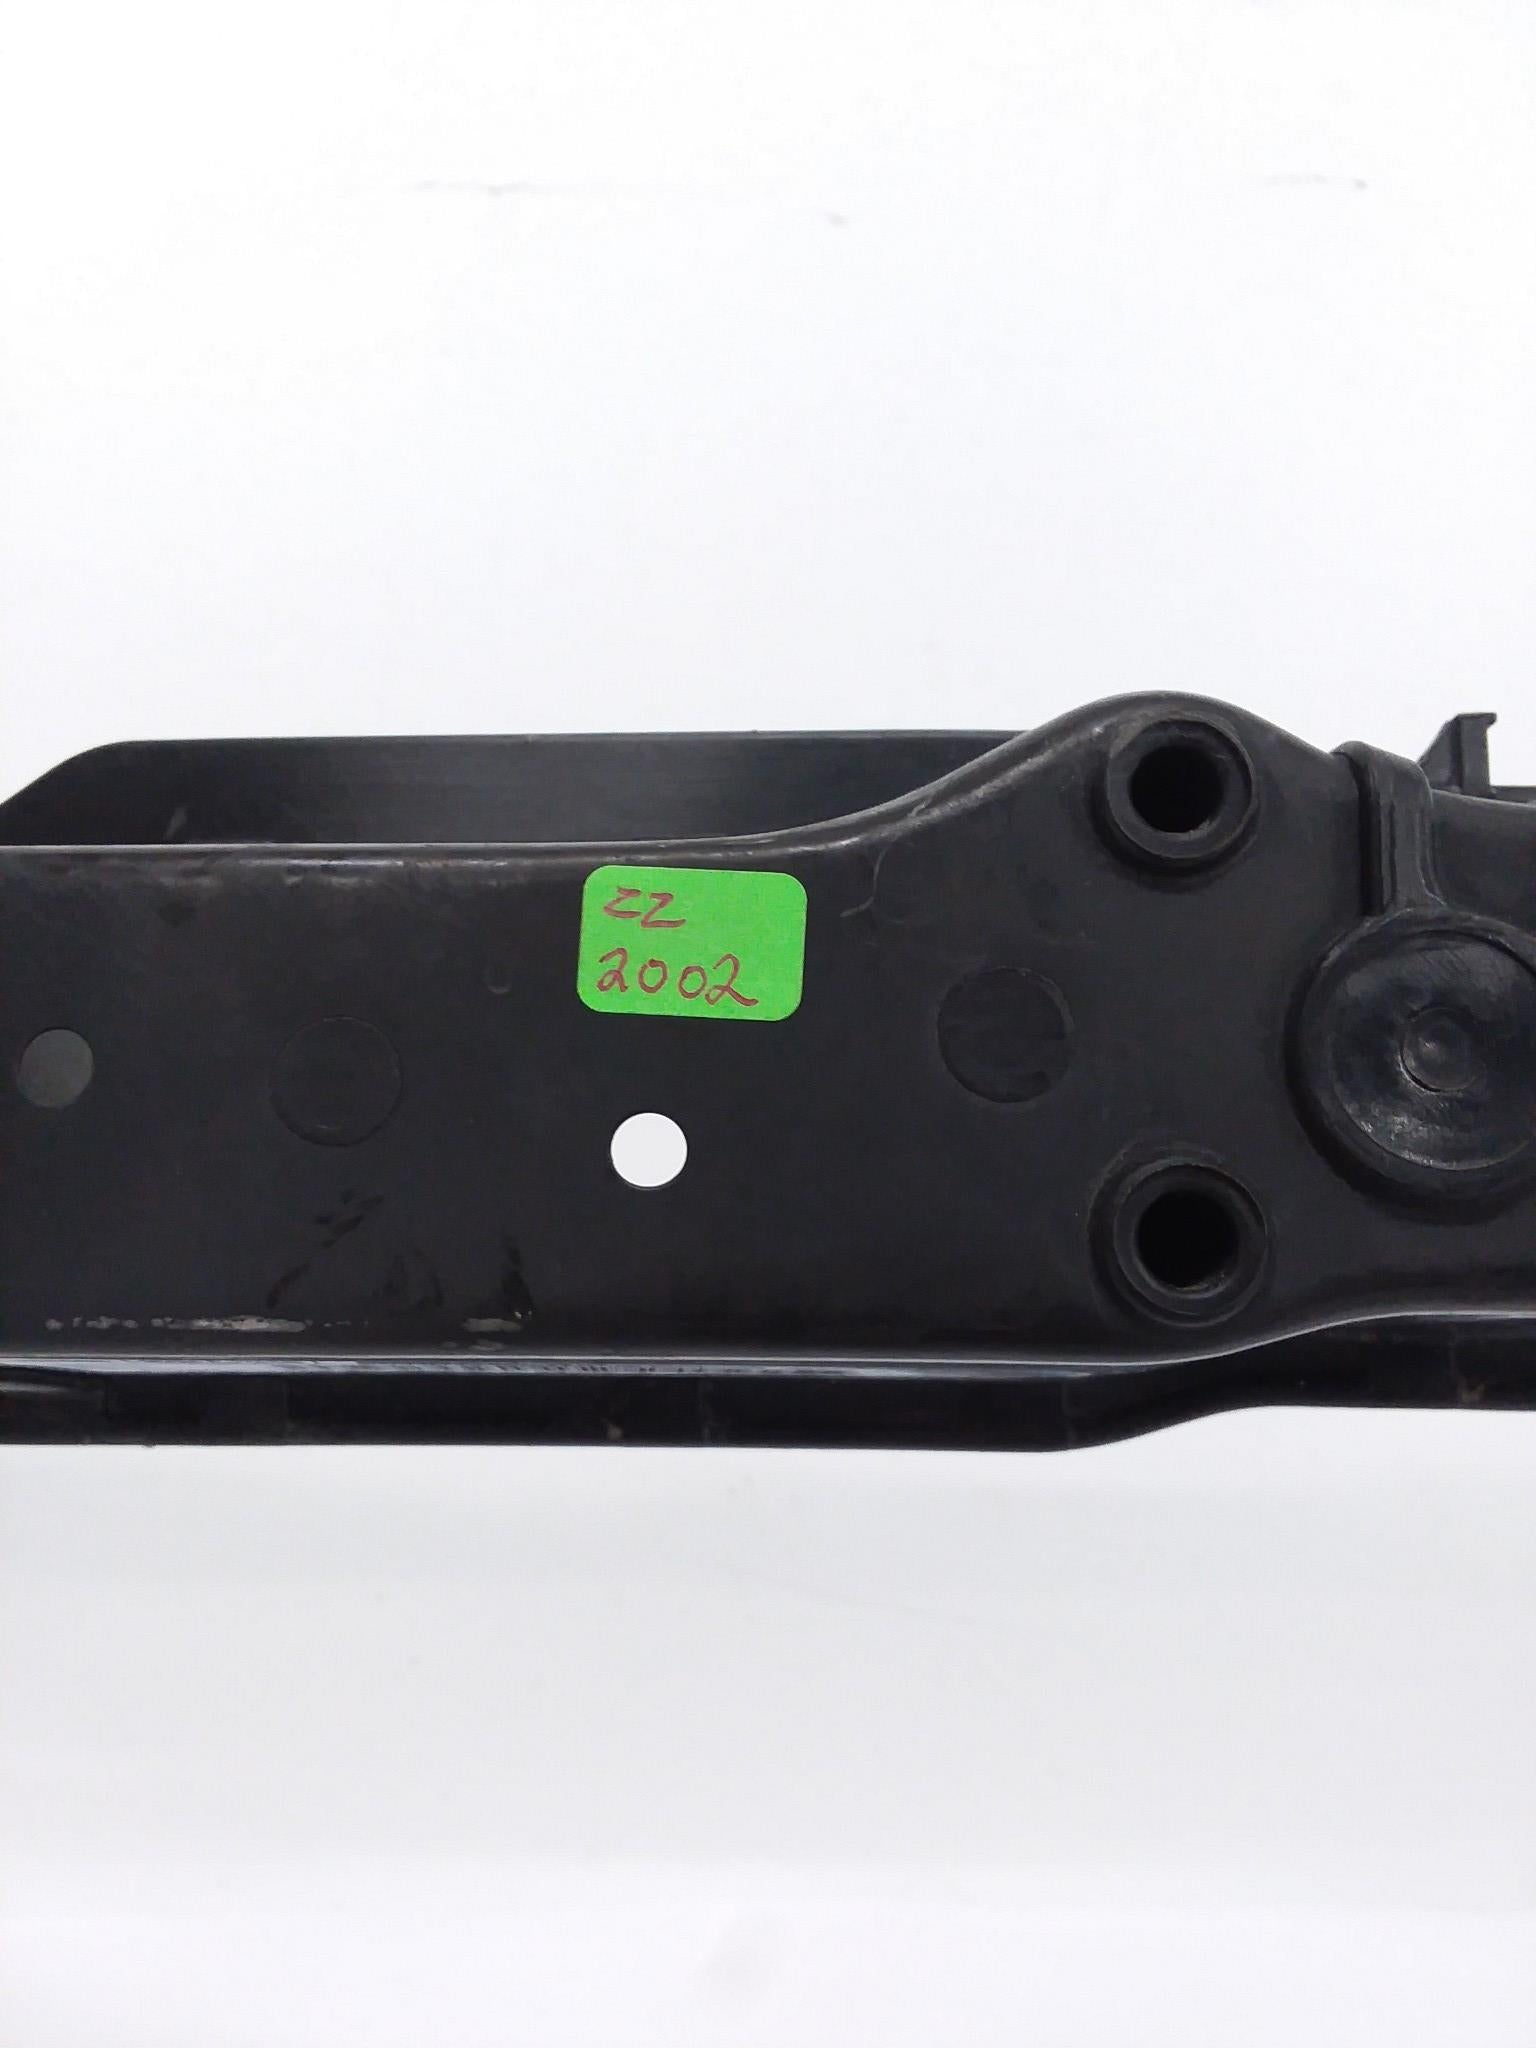 2012-2018 FORD Focus Radiator Core Support Bracket Panel OEM cm5z-8a284-a